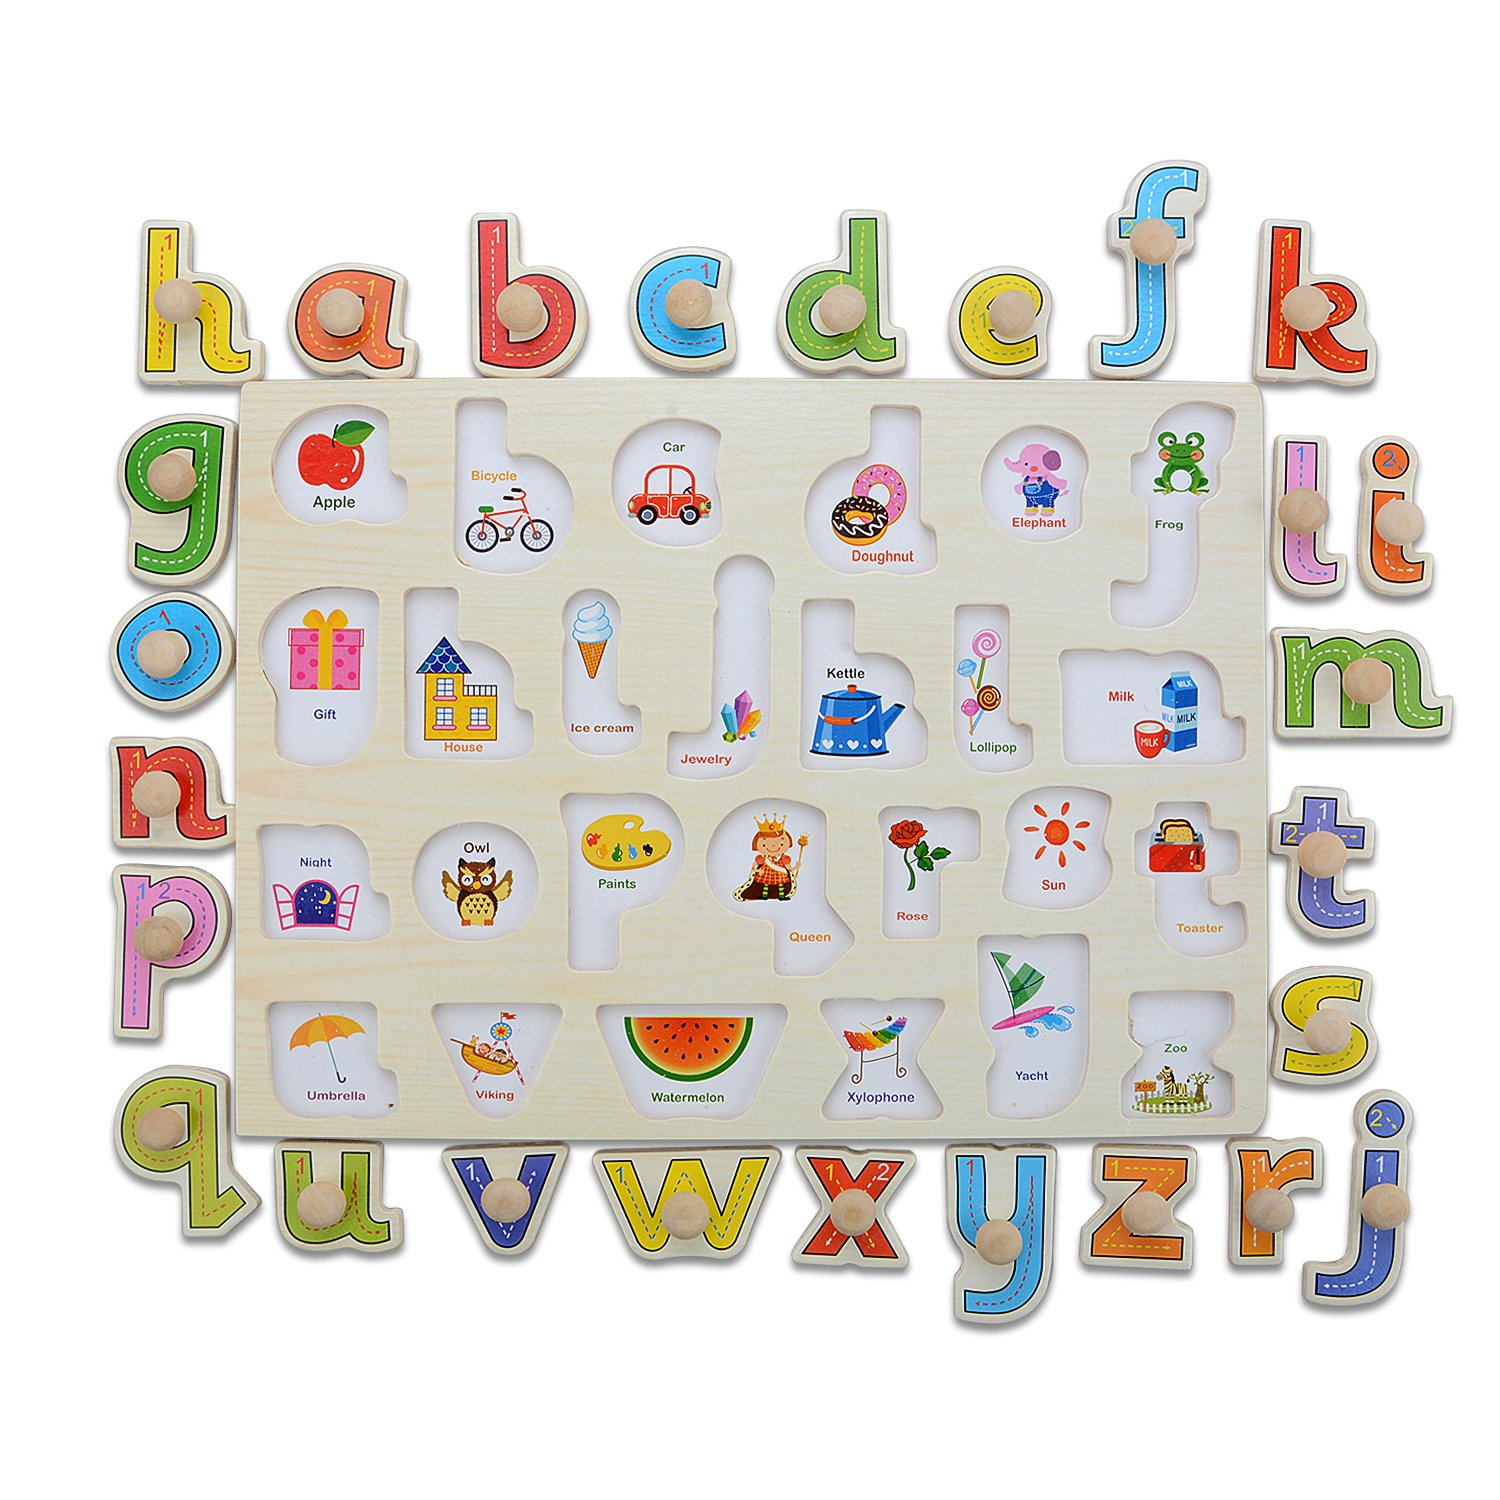 Moonvinn Preschool Wooden Alphabet Puzzle Board (abc) Letters Jigsaw Puzzle, Early Educational Toy for Toddlers/Kids/Children